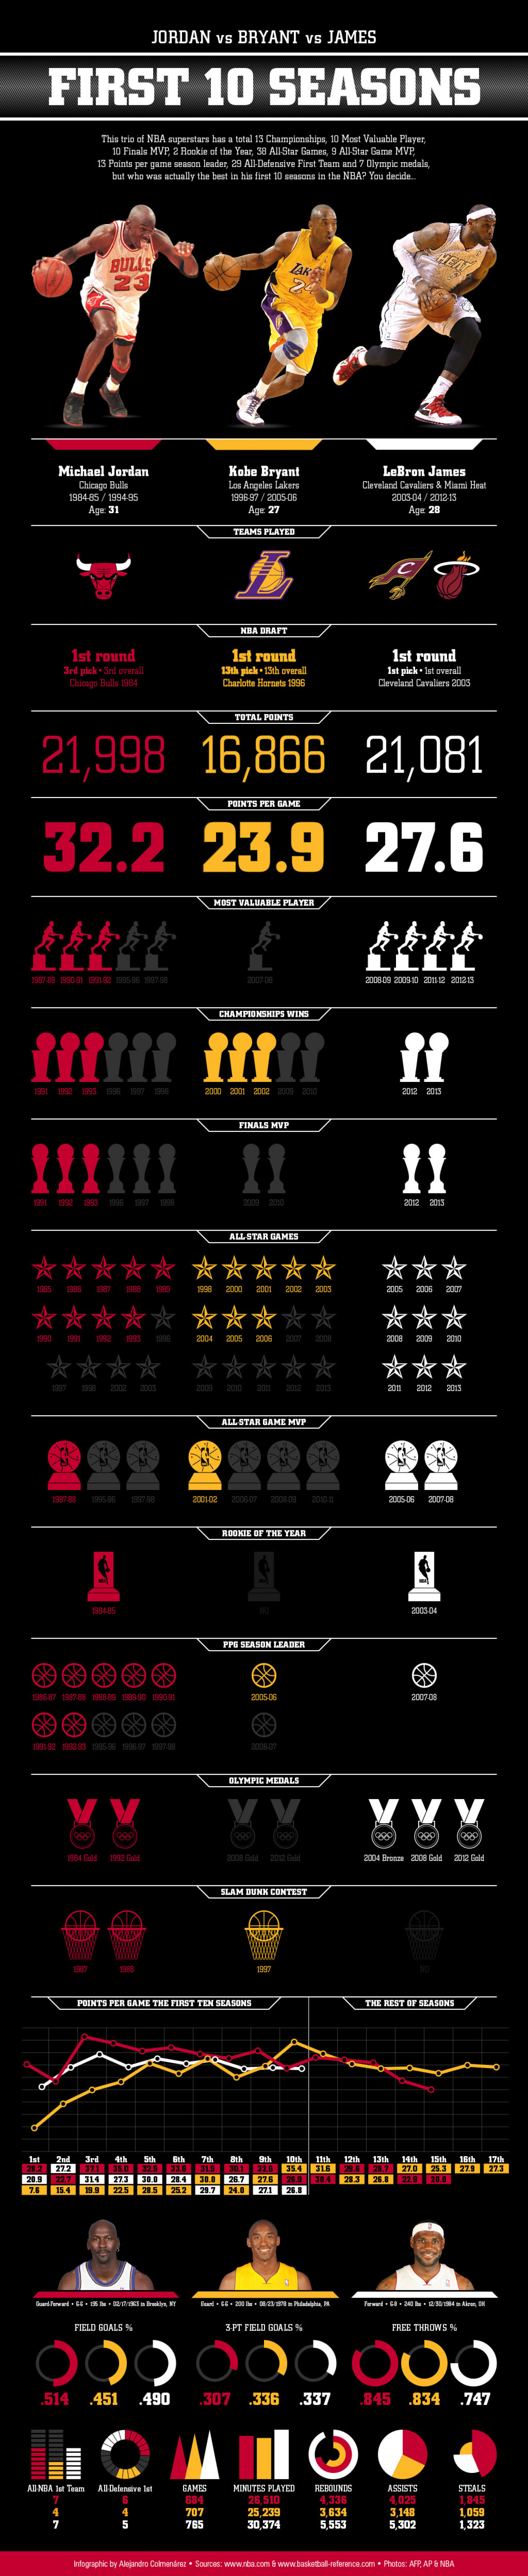 BIG 3 Comparation Infographic